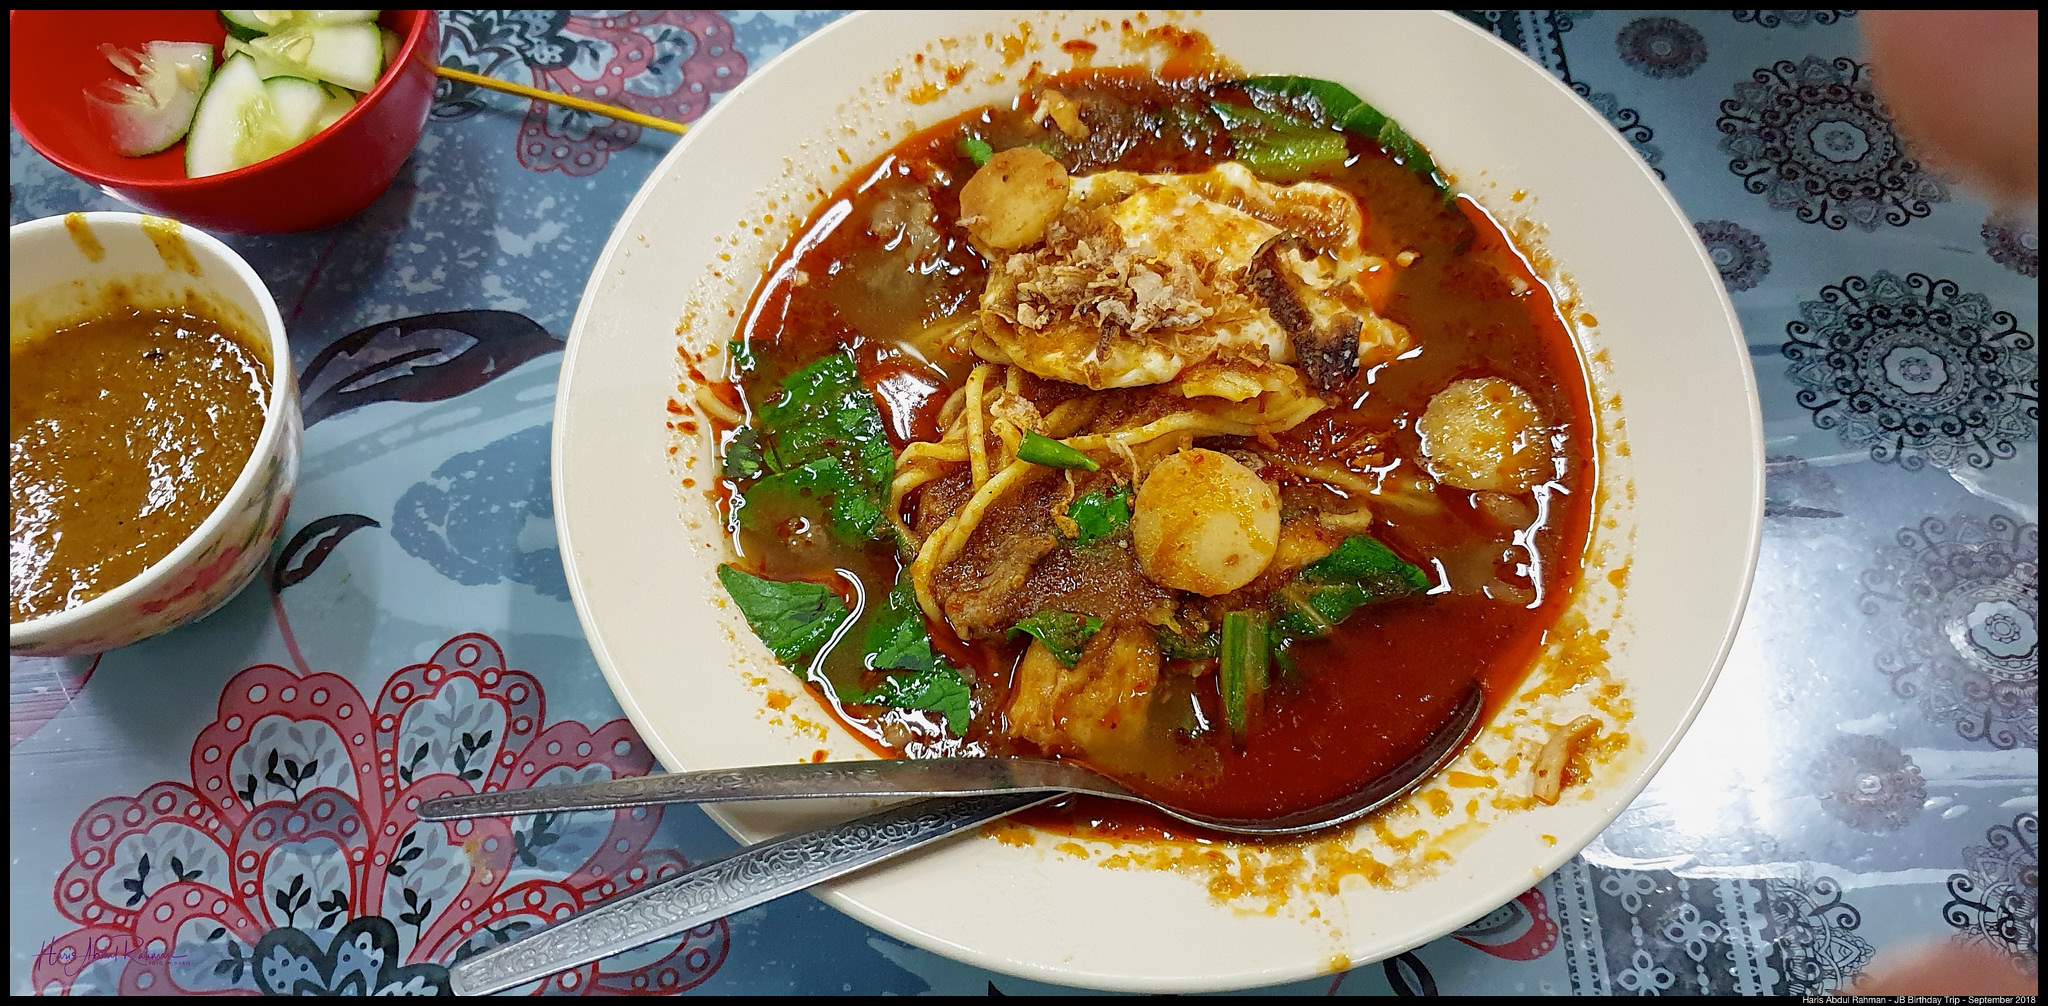 Also had the delicious mee bandung